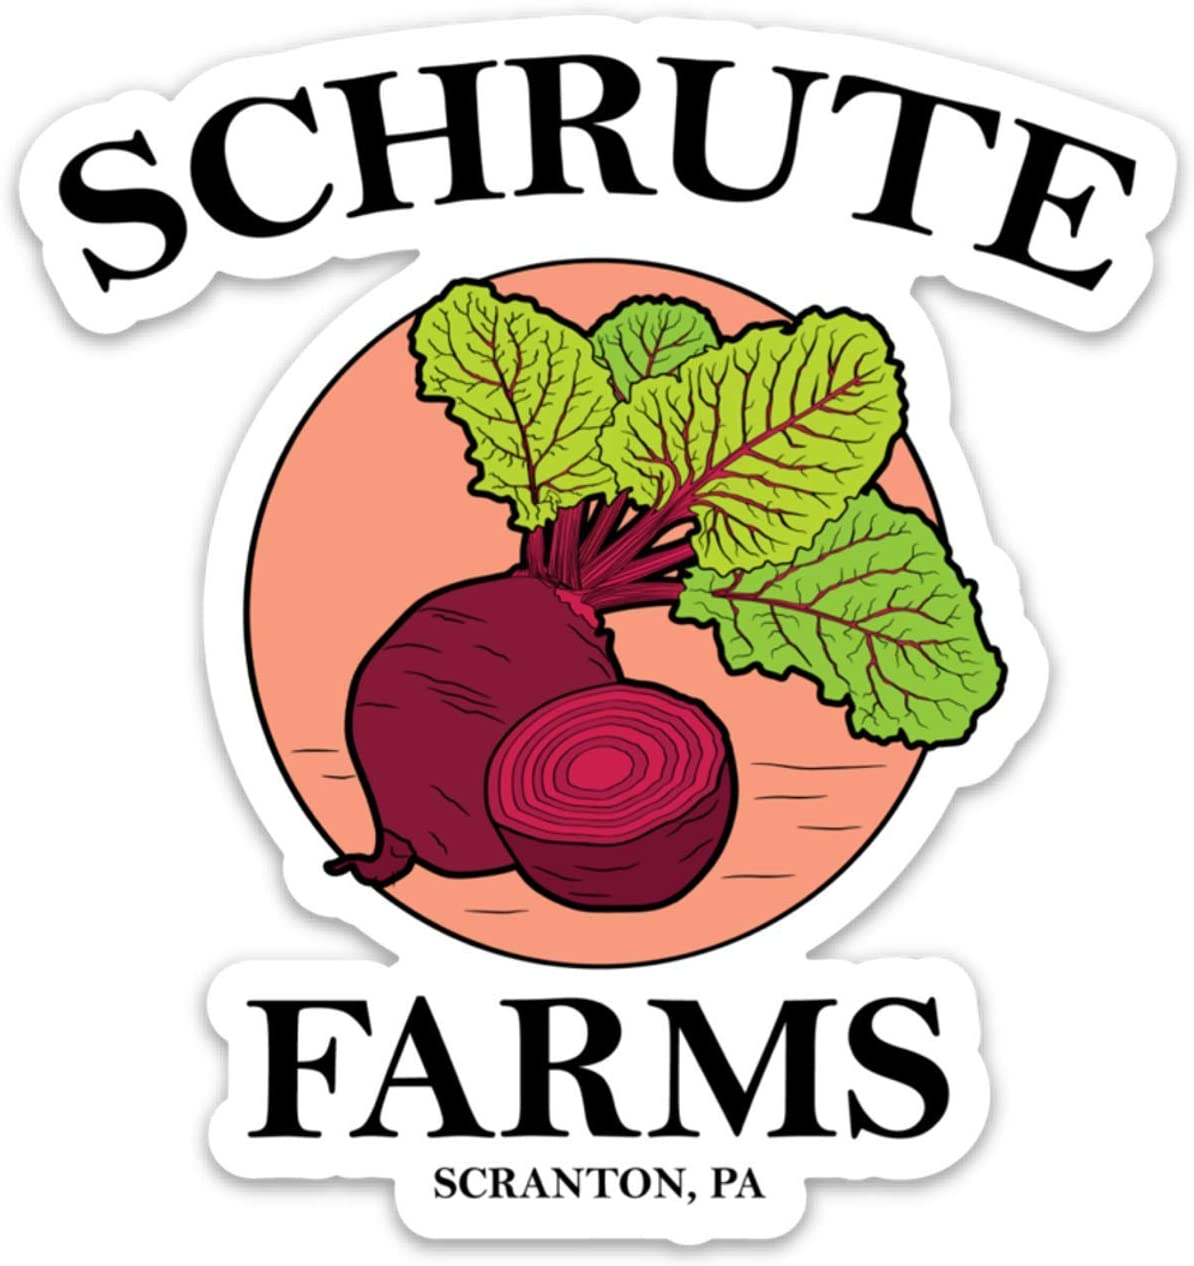 "Schrute Farms Beets Office - Vinyl Sticker Waterproof Decal 4"" for Laptop, Waterbottle etc"